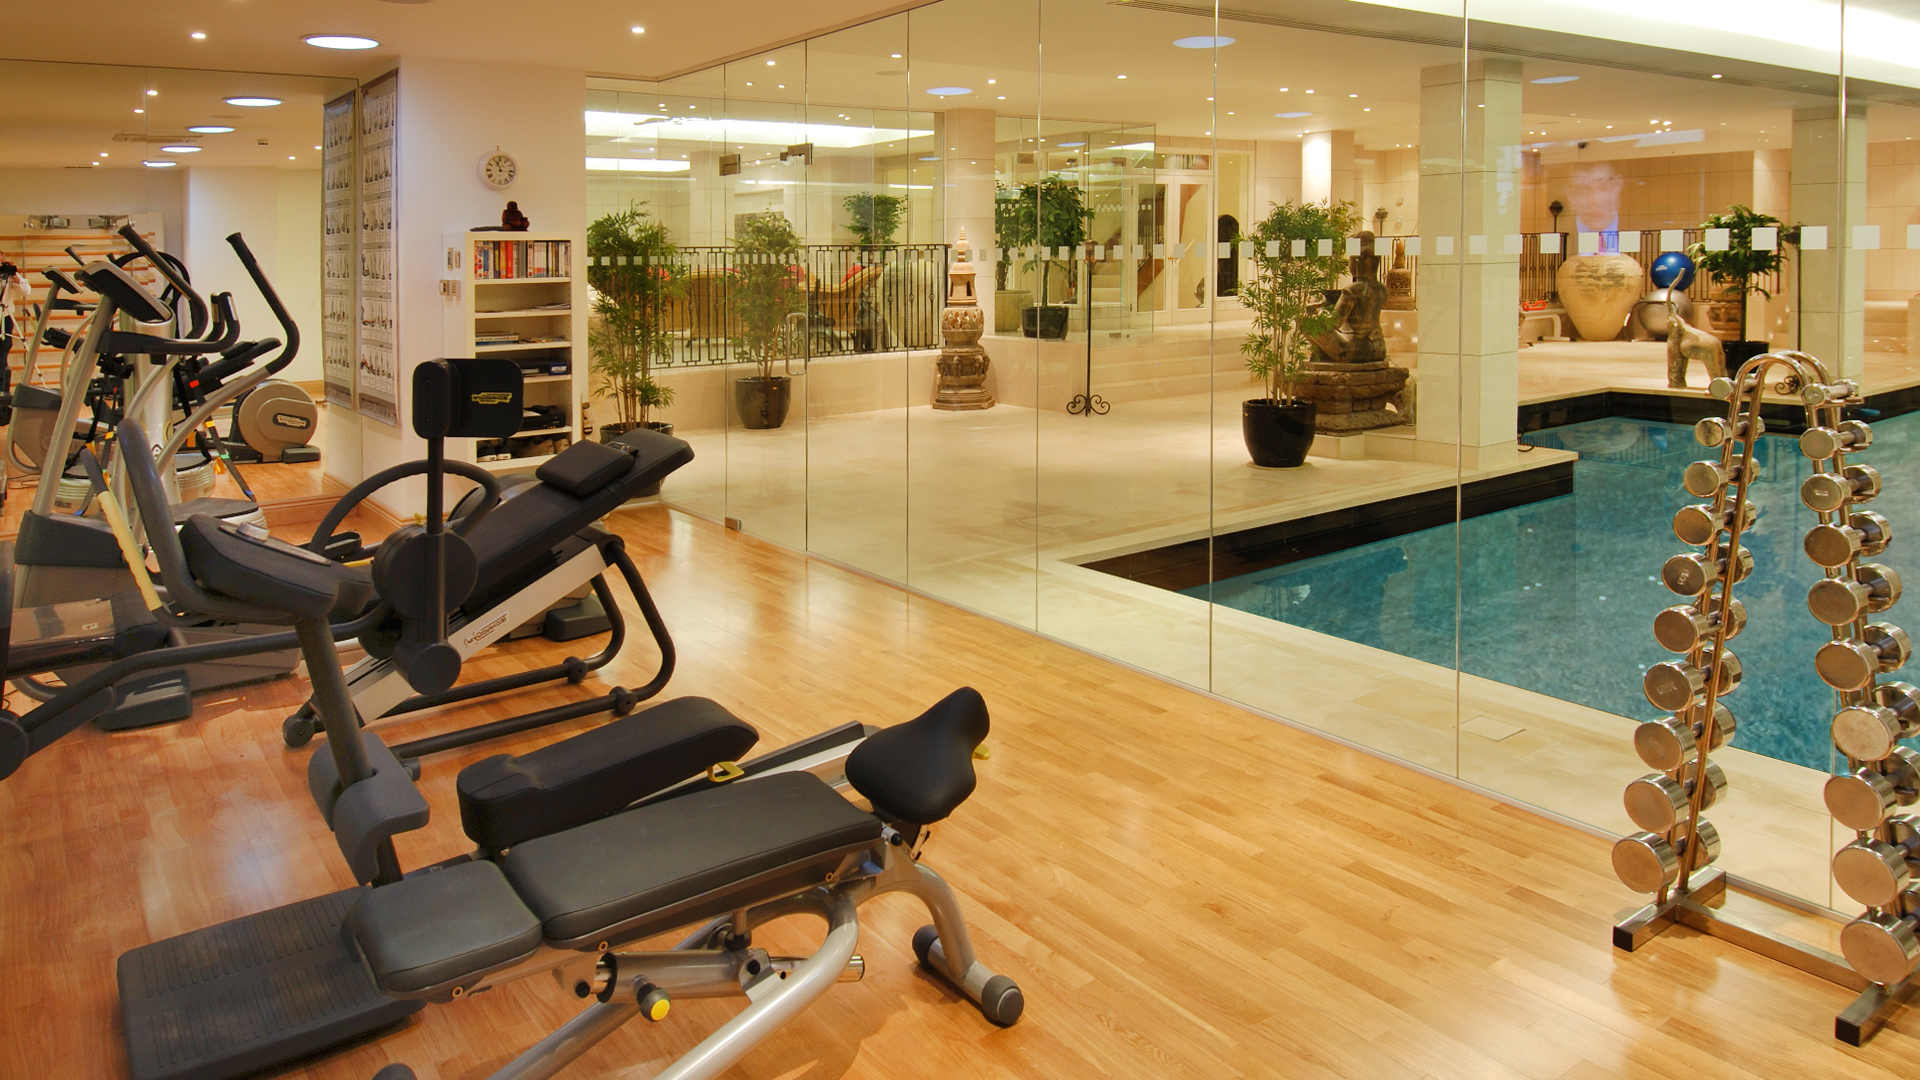 Home gyms site london basements